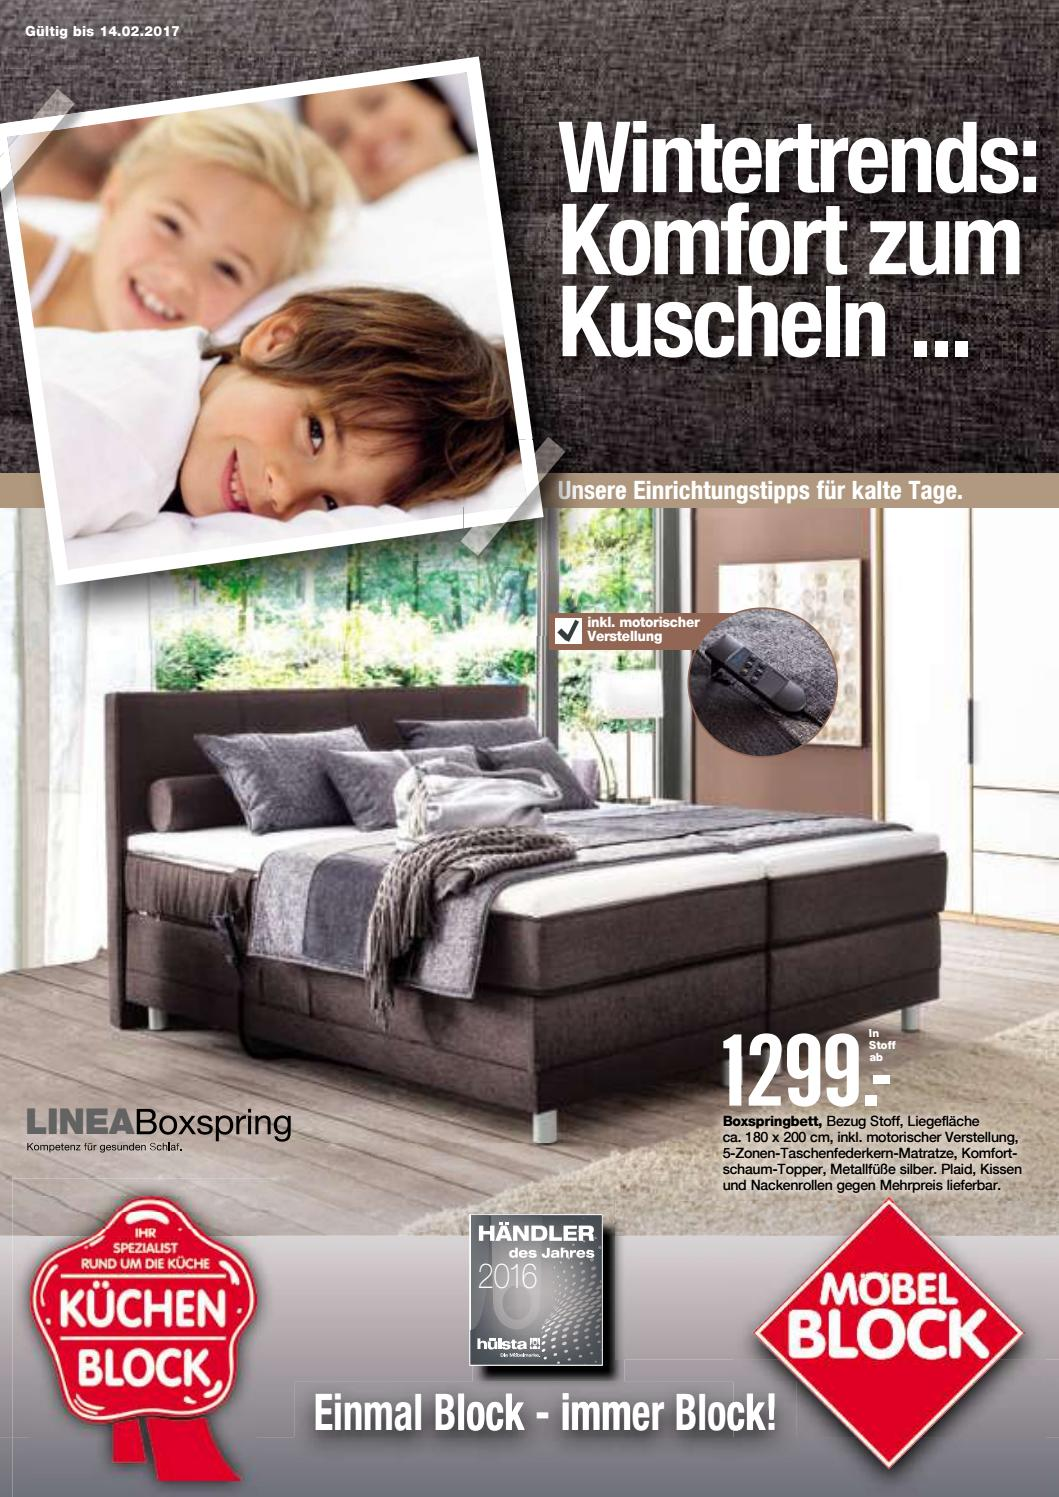 Hülsta Couchtisch Erle Moebel Block Kw3 By Russmedia Digital Gmbh Issuu